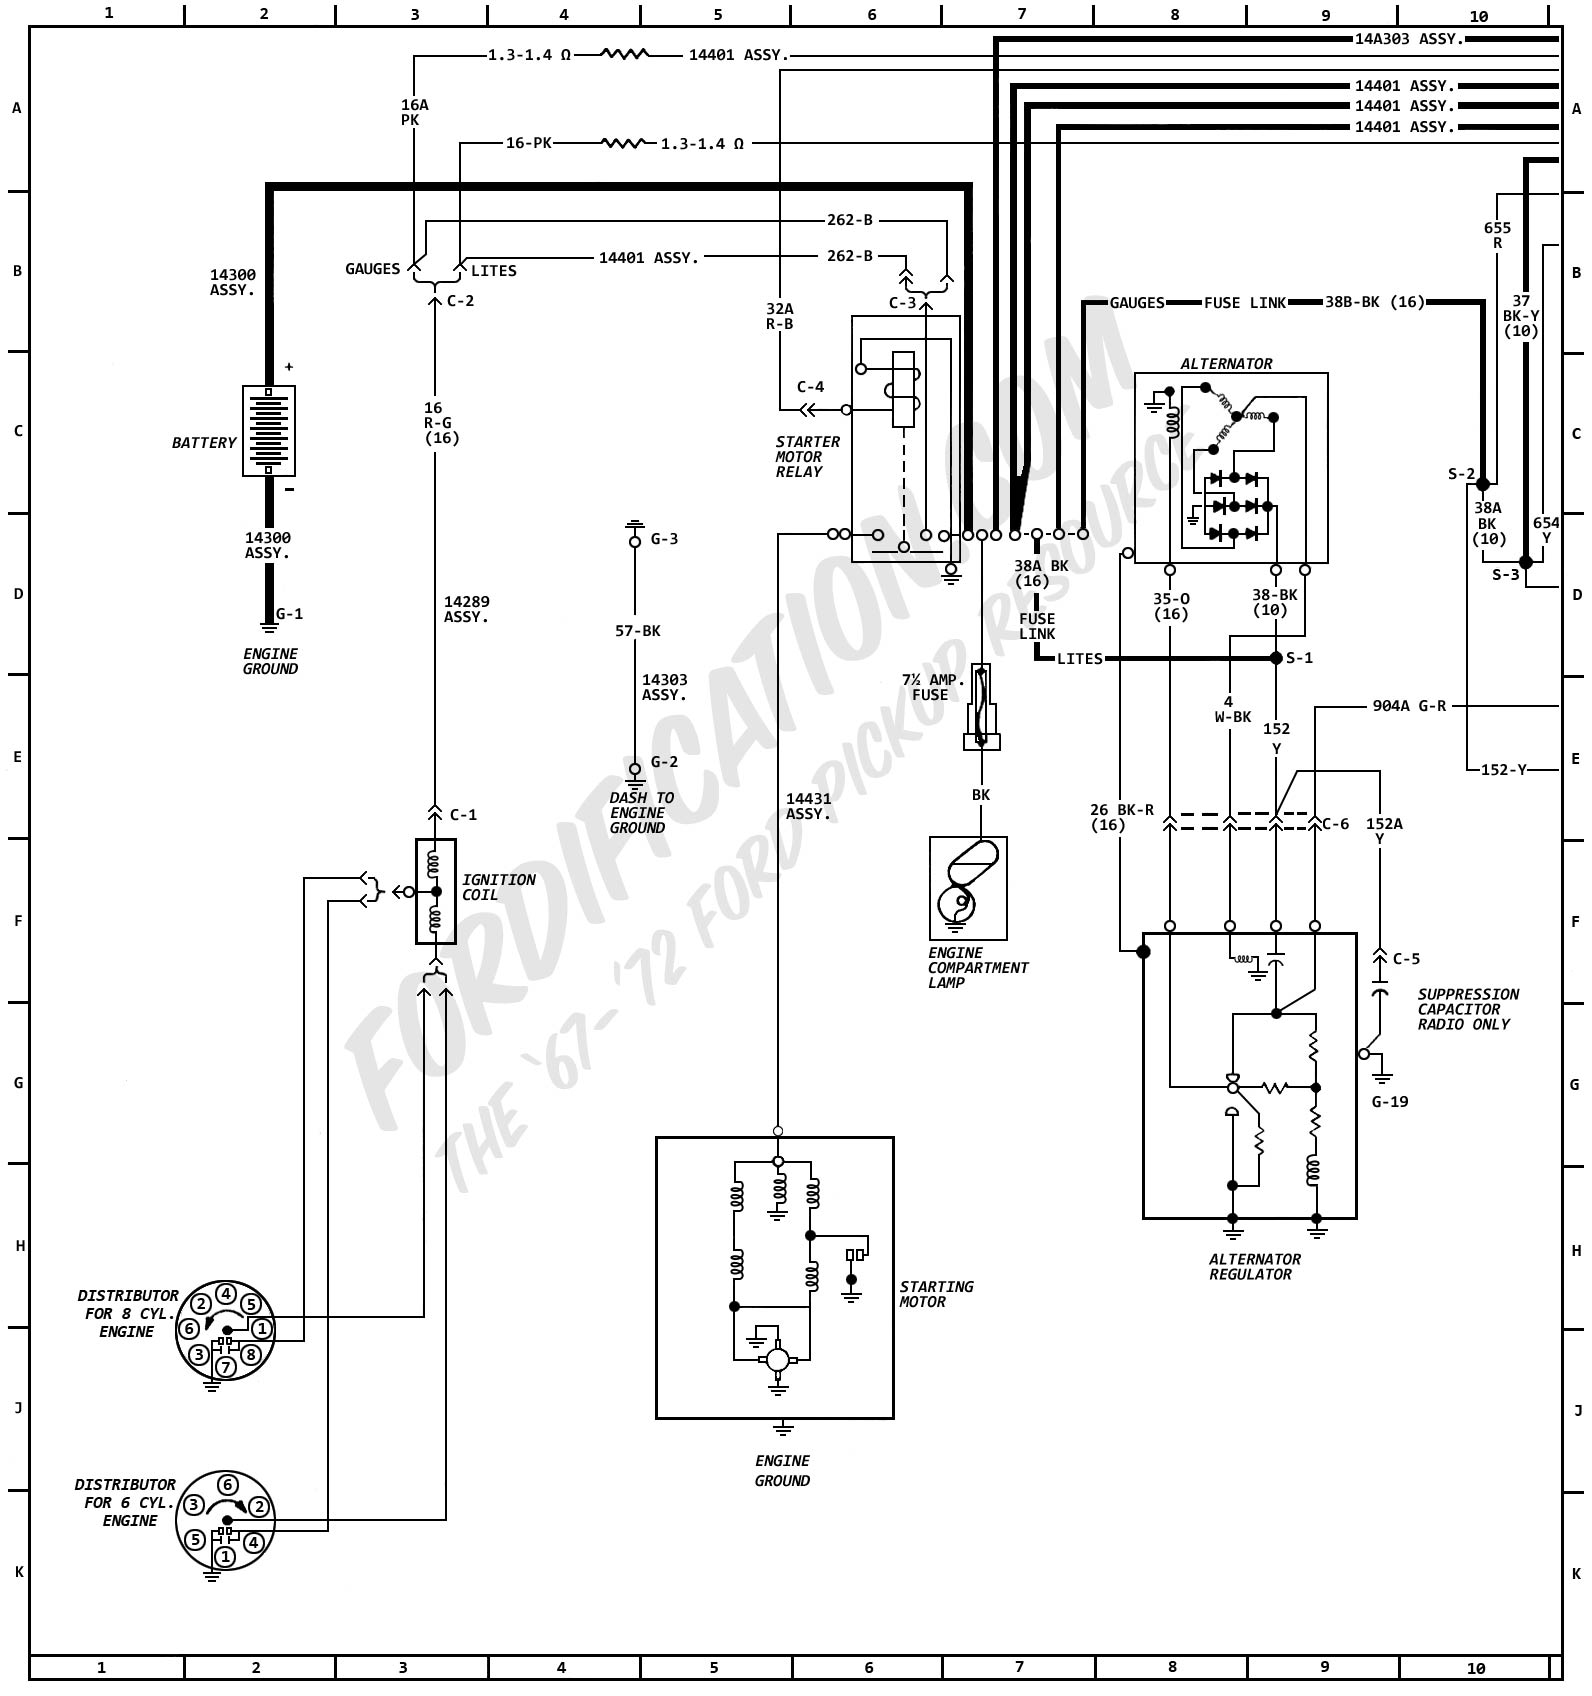 1972 Ford F100 Wiring Diagram - Wiring Diagram Pickup Wiring Schematic on generator schematics, transformer schematics, computer schematics, wire schematics, plumbing schematics, electrical schematics, circuit schematics, ductwork schematics, tube amp schematics, amplifier schematics, engineering schematics, electronics schematics, design schematics, ford diagrams schematics, engine schematics, ecu schematics, ignition schematics, piping schematics, motor schematics, transmission schematics,